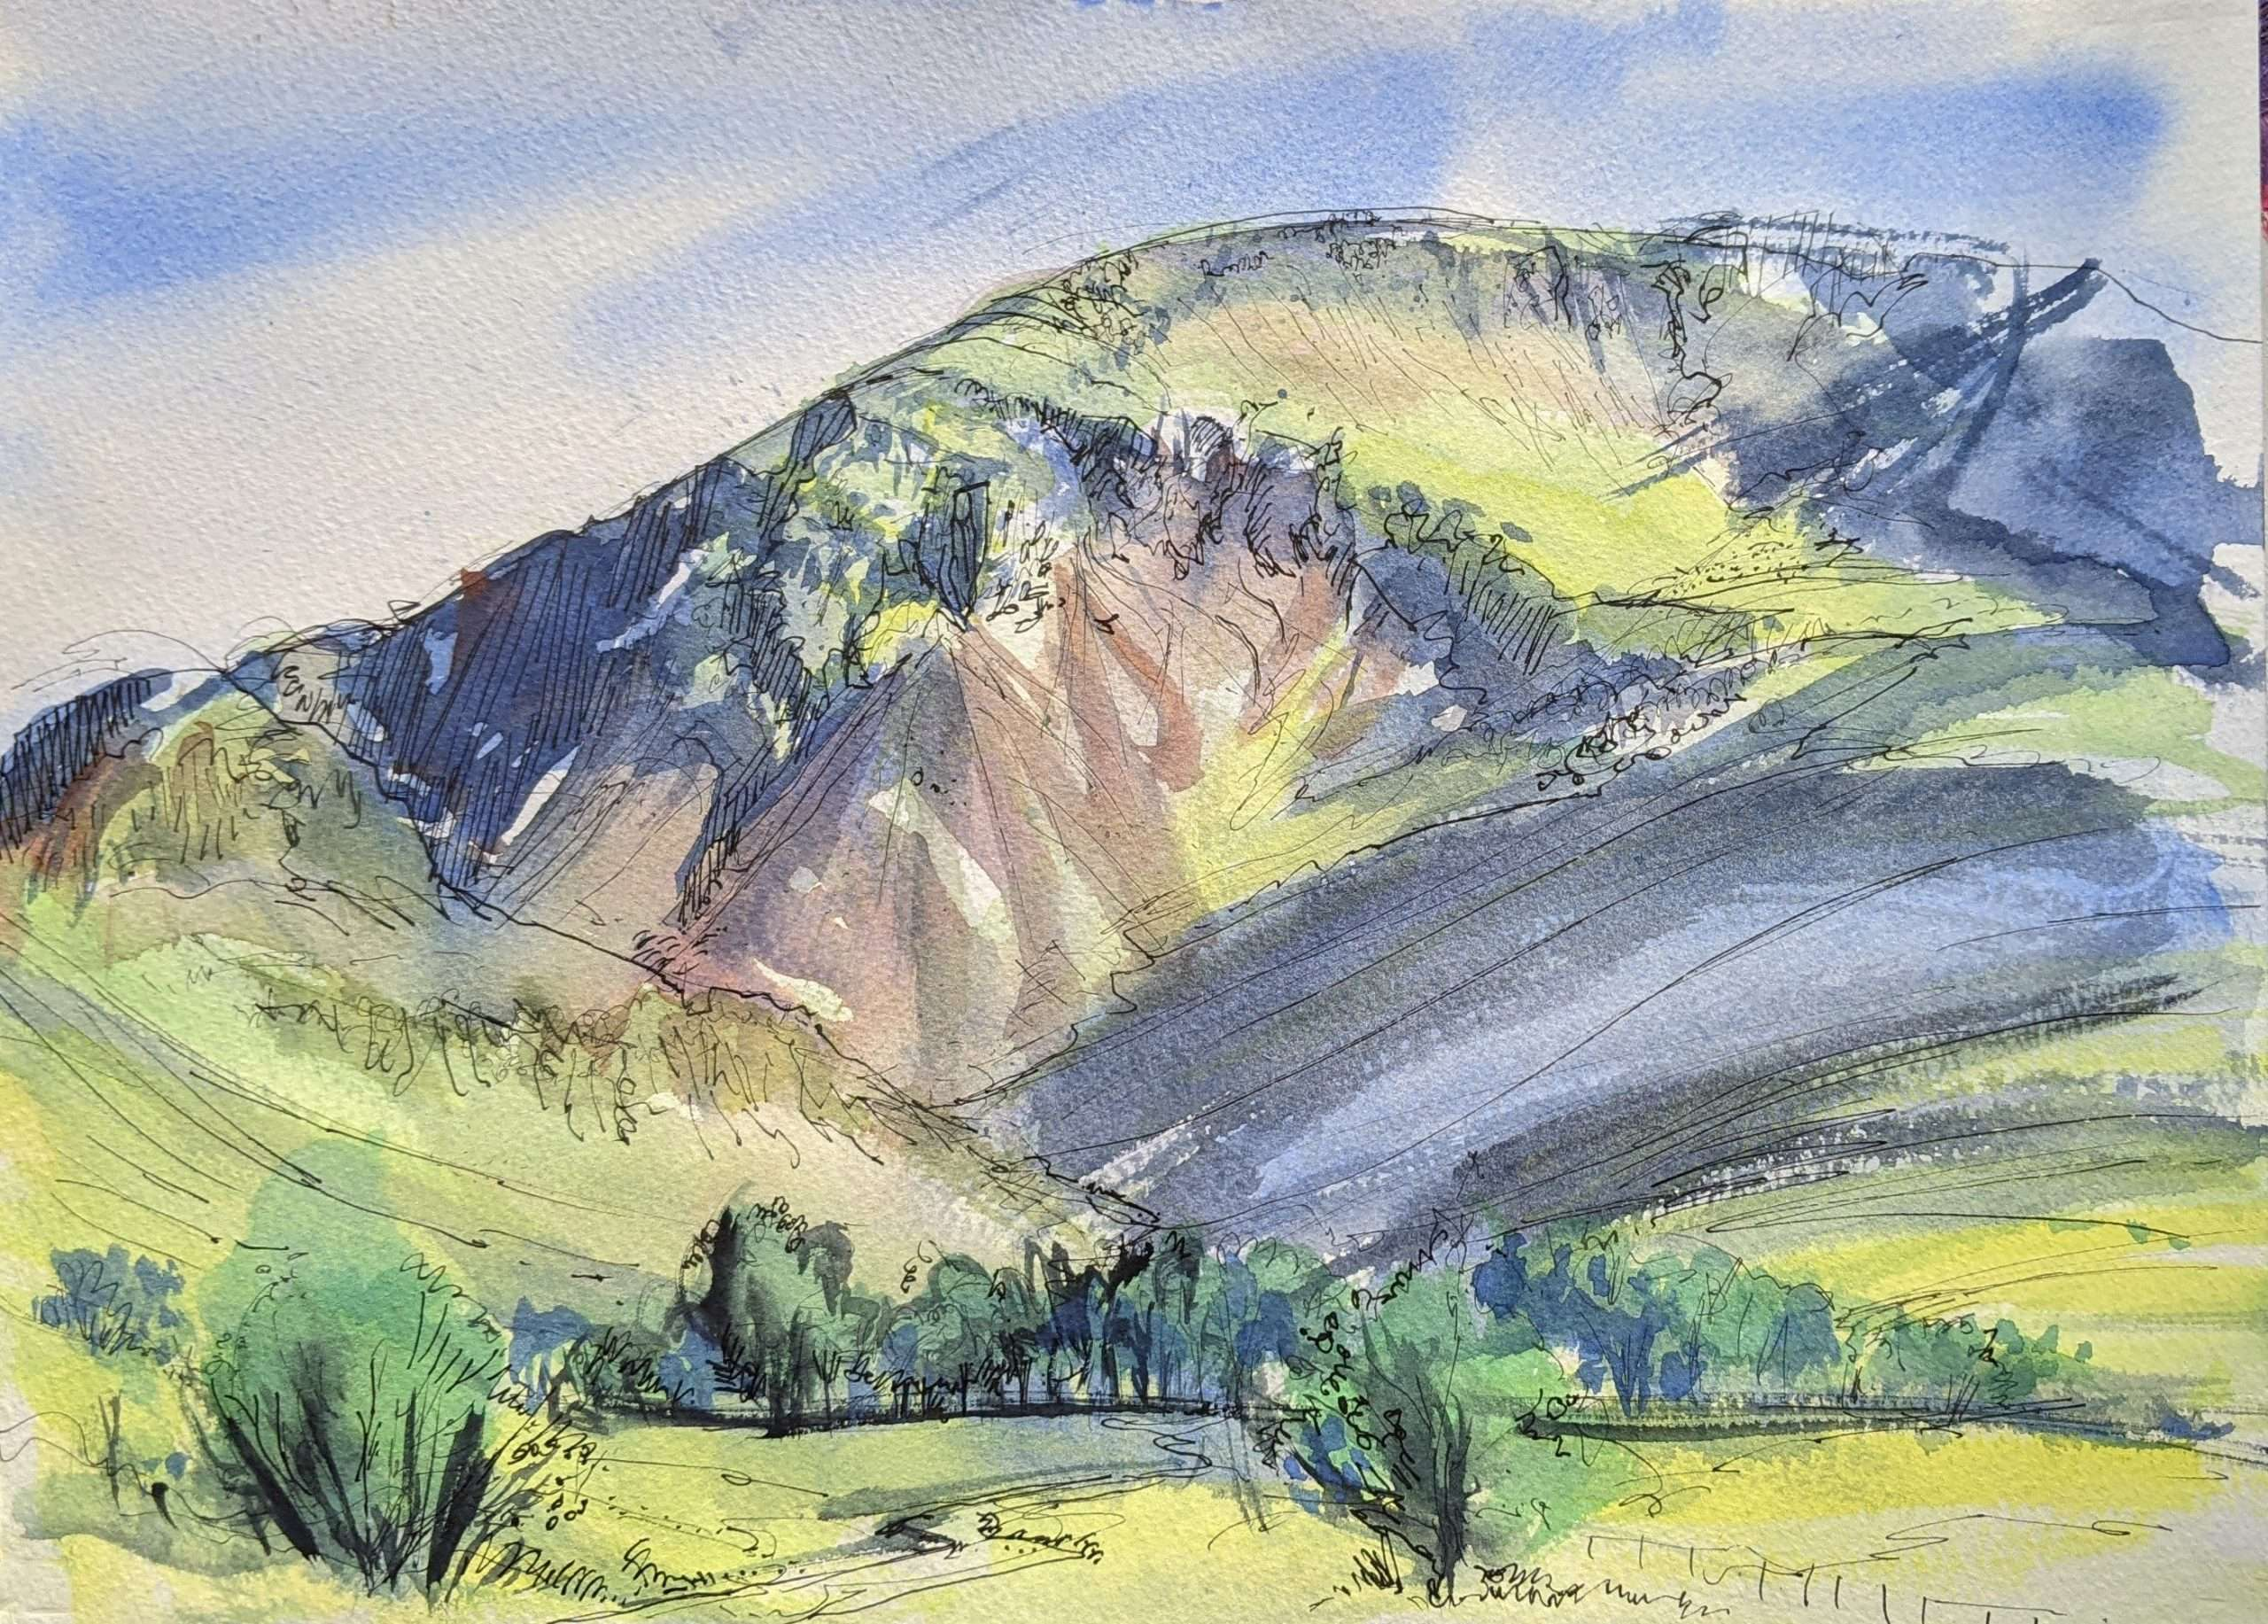 Watercolour painting of Dale Head in the Newslands Valley, Cumbria.